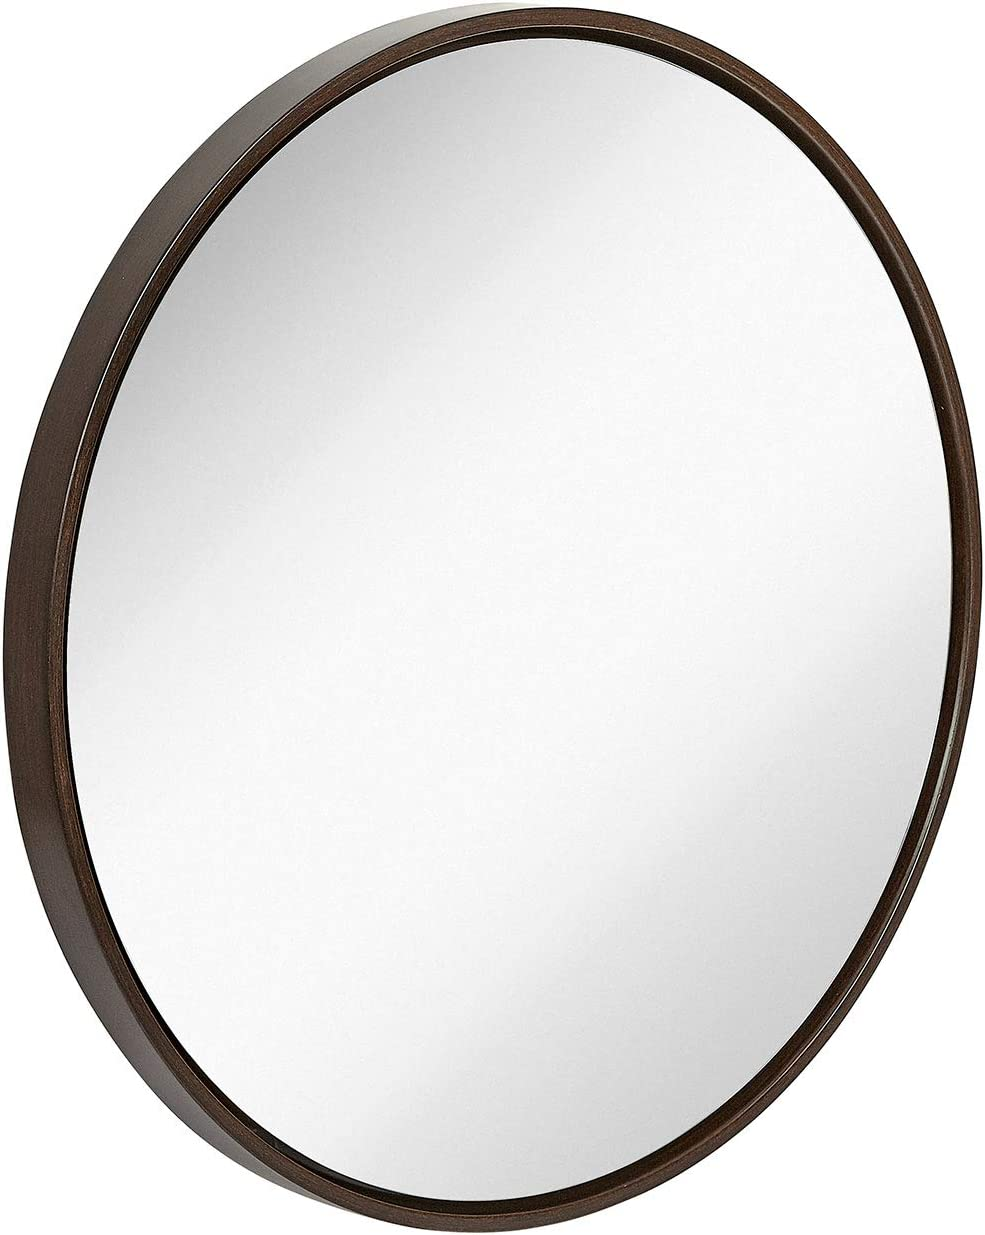 "Hamilton Hills Clean Large Modern Wenge 32"" Wood Circle Frame Wall Mirror 